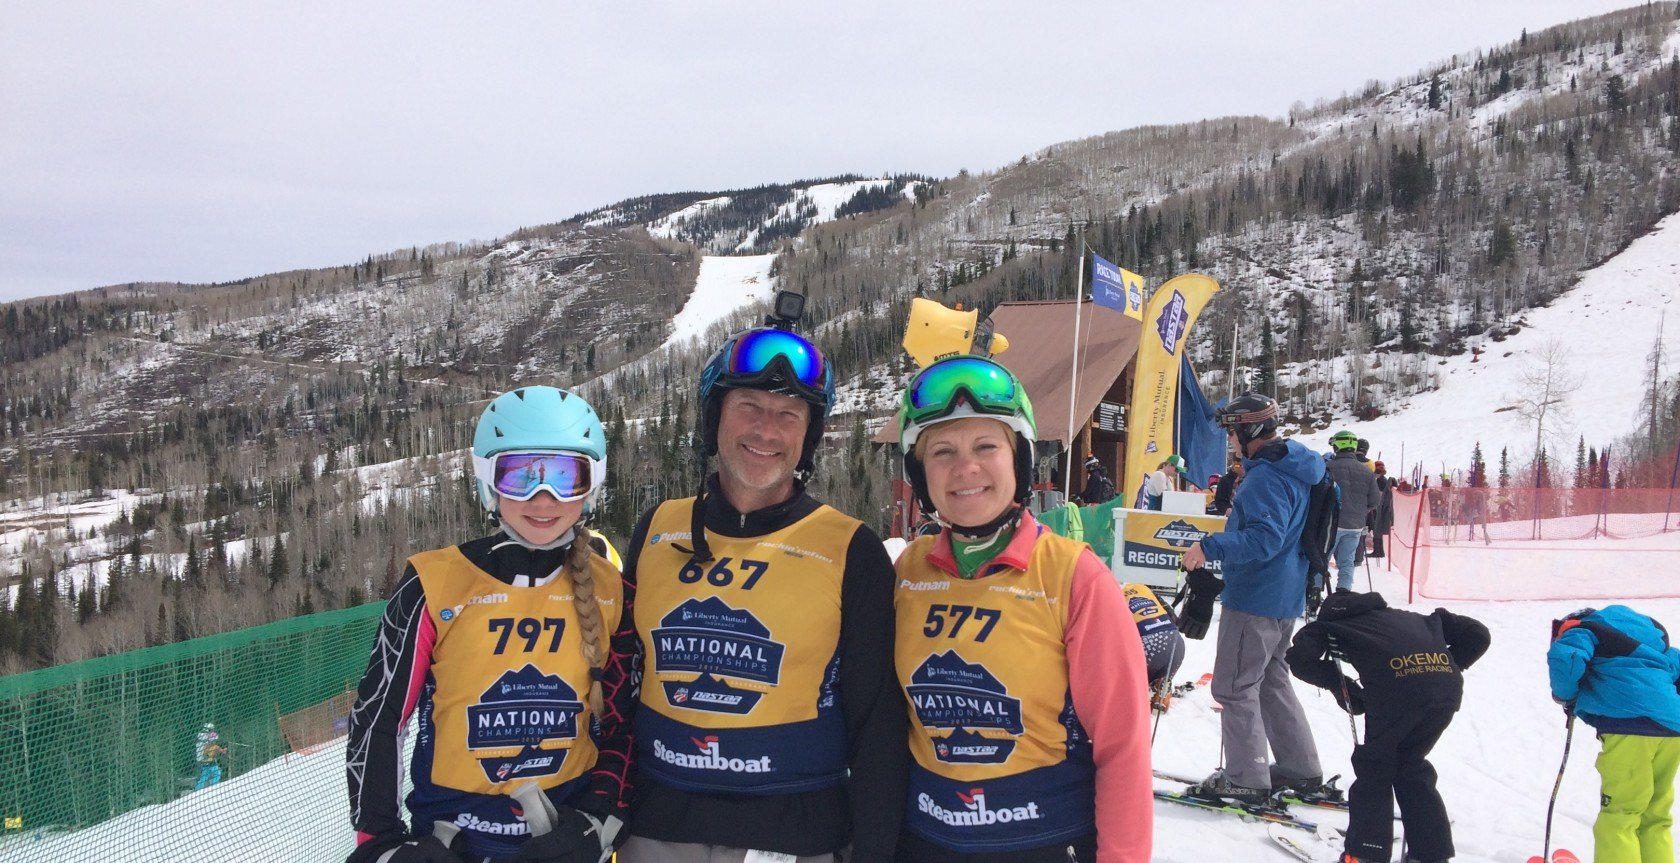 Ski racing dad Rudy Muto of Kutztown PA with his family at NASTAR Nationals 2017 in Steamboat Springs, CO.